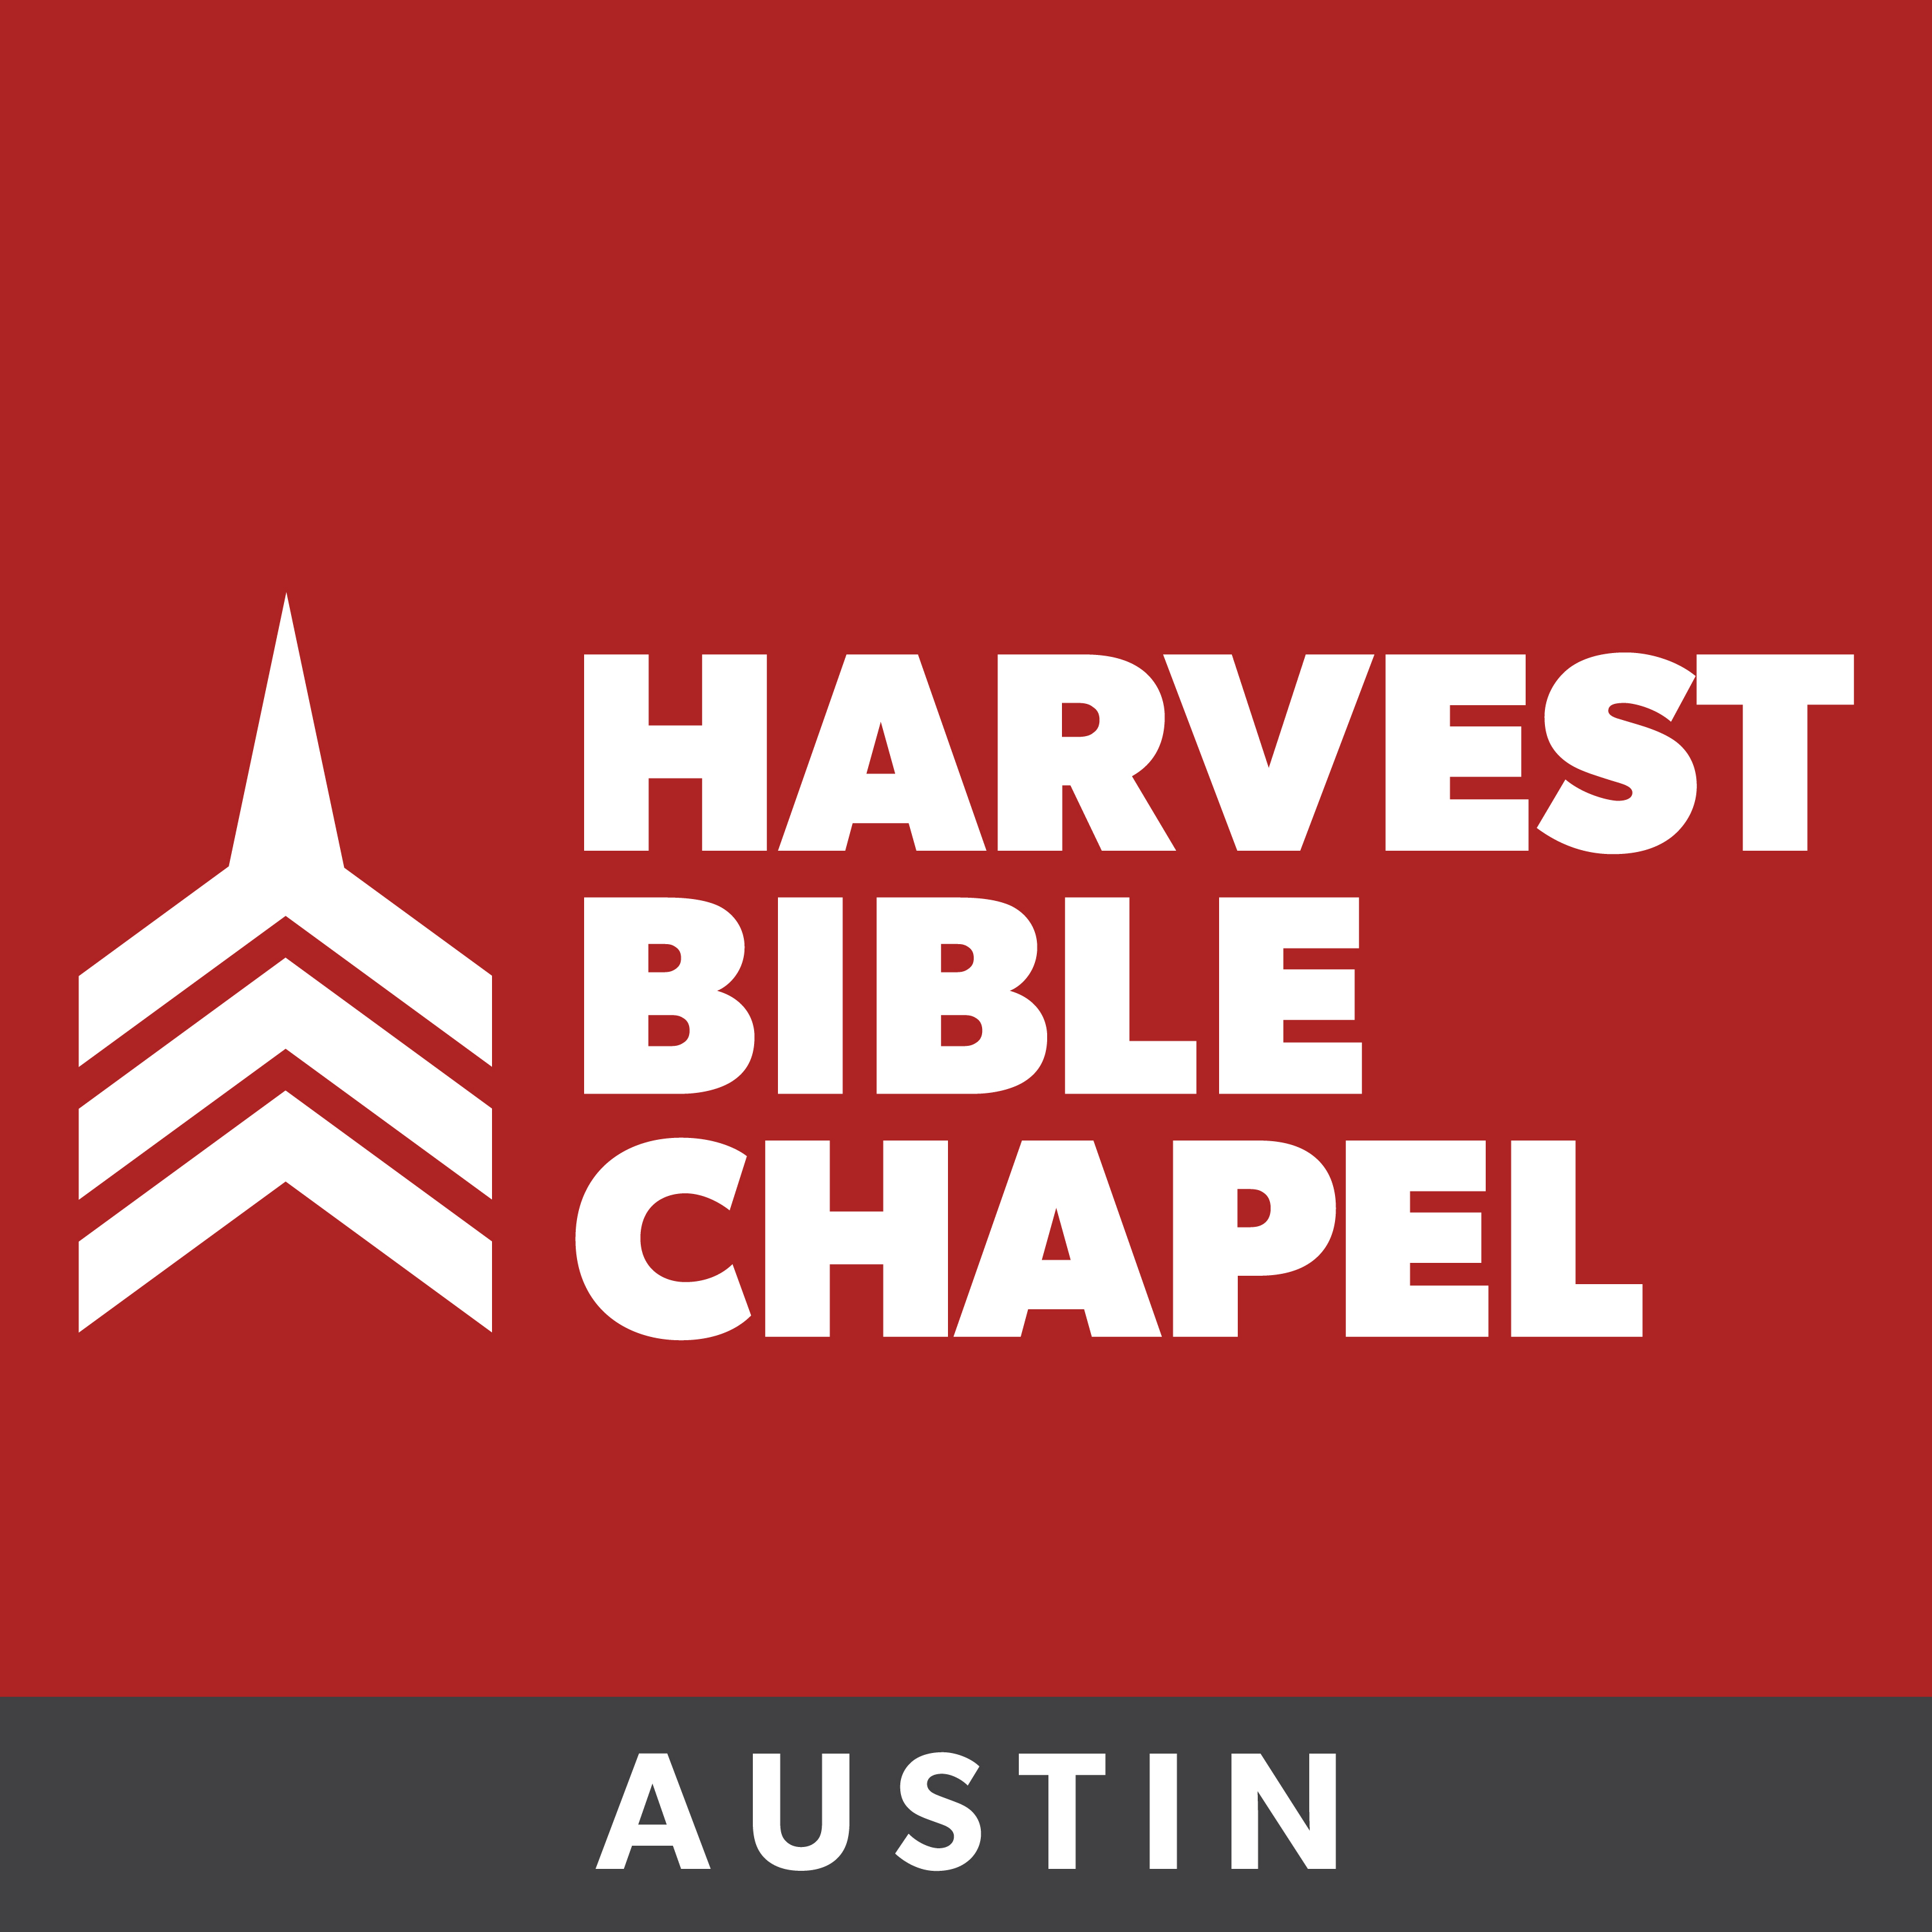 Harvest Bible Chapel Austin - Sermons